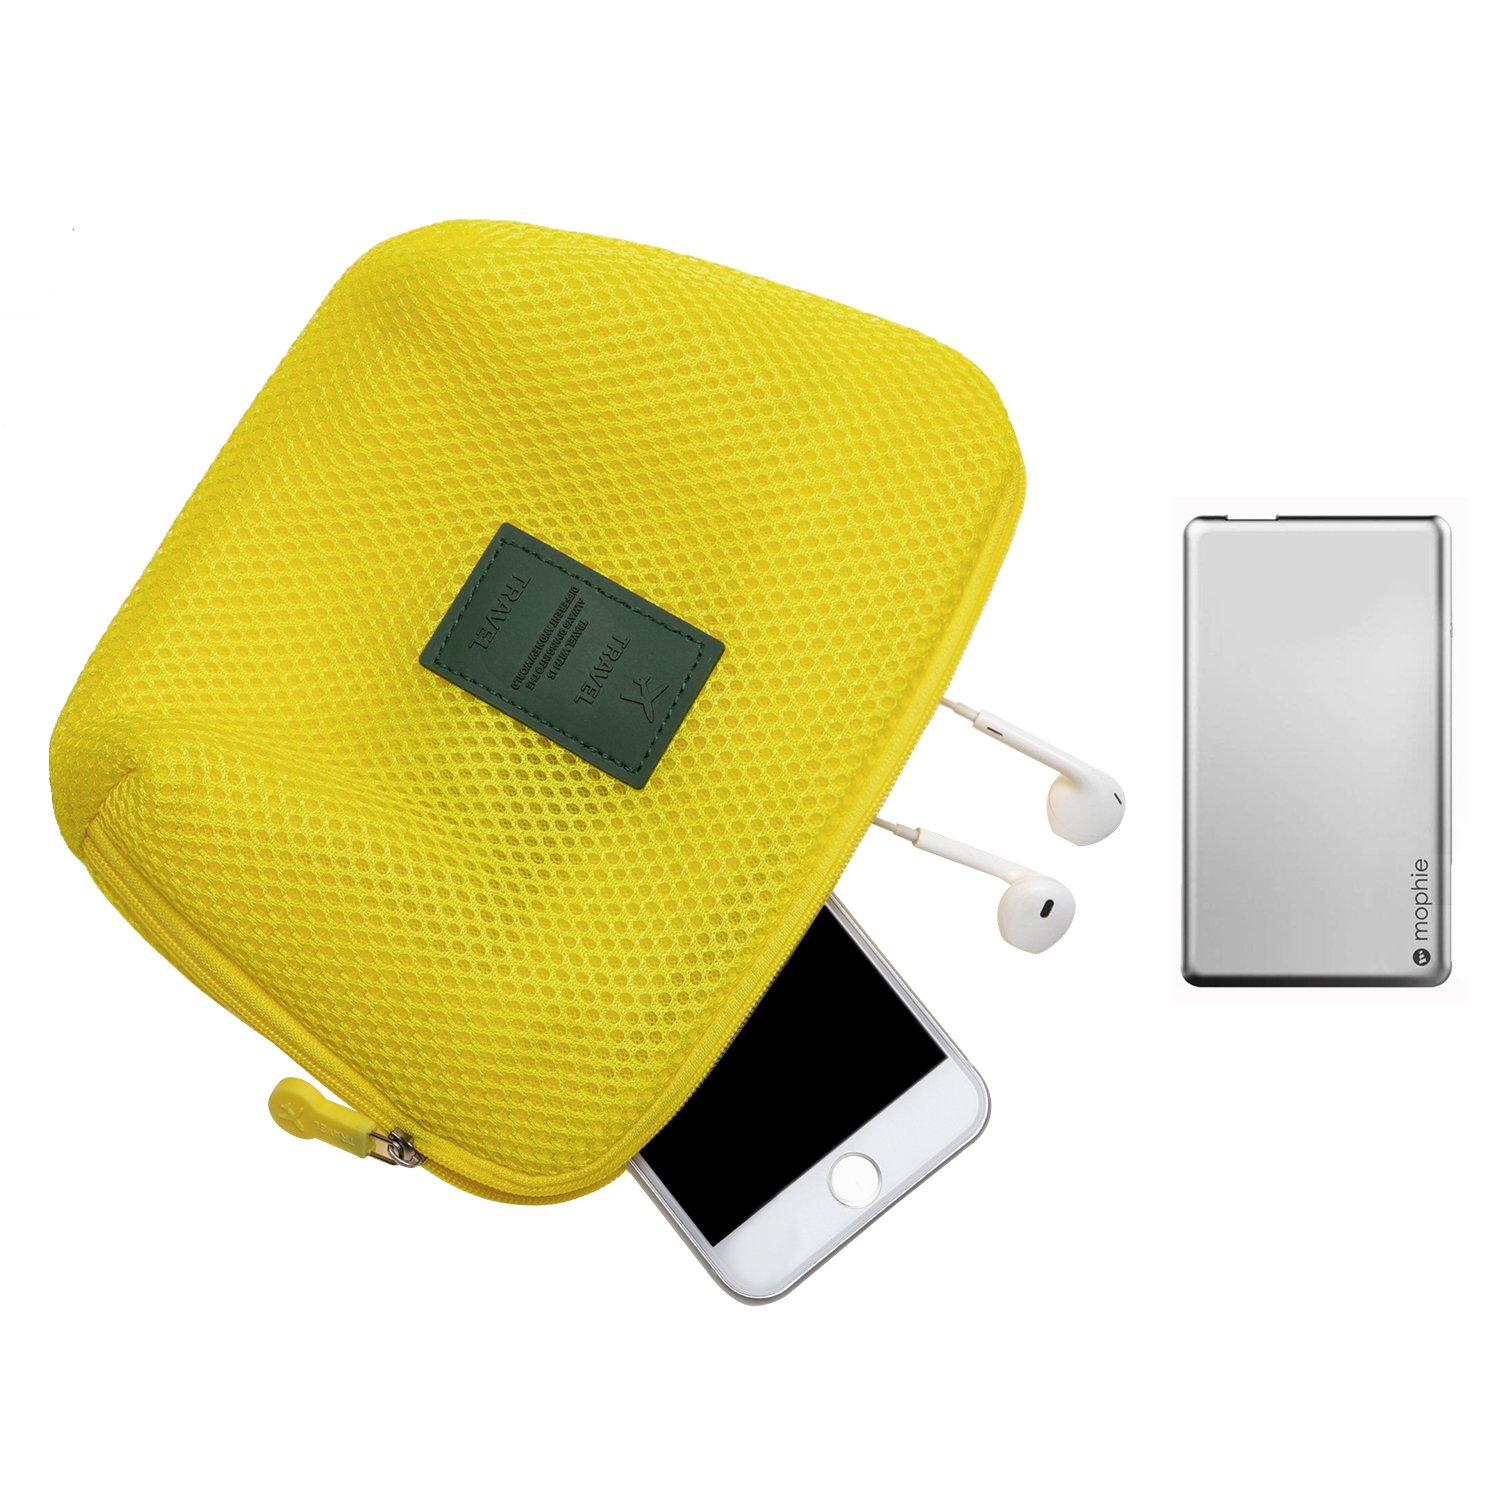 Travel Universal Organizer Bag / Electronics Accessories Case Packing Storage Bag, Multifunctional Shockproof Makeup Pouch, Gadget Bag, Data Cable Travel Case With Mesh (Size M, Yellow) - Happy Hours